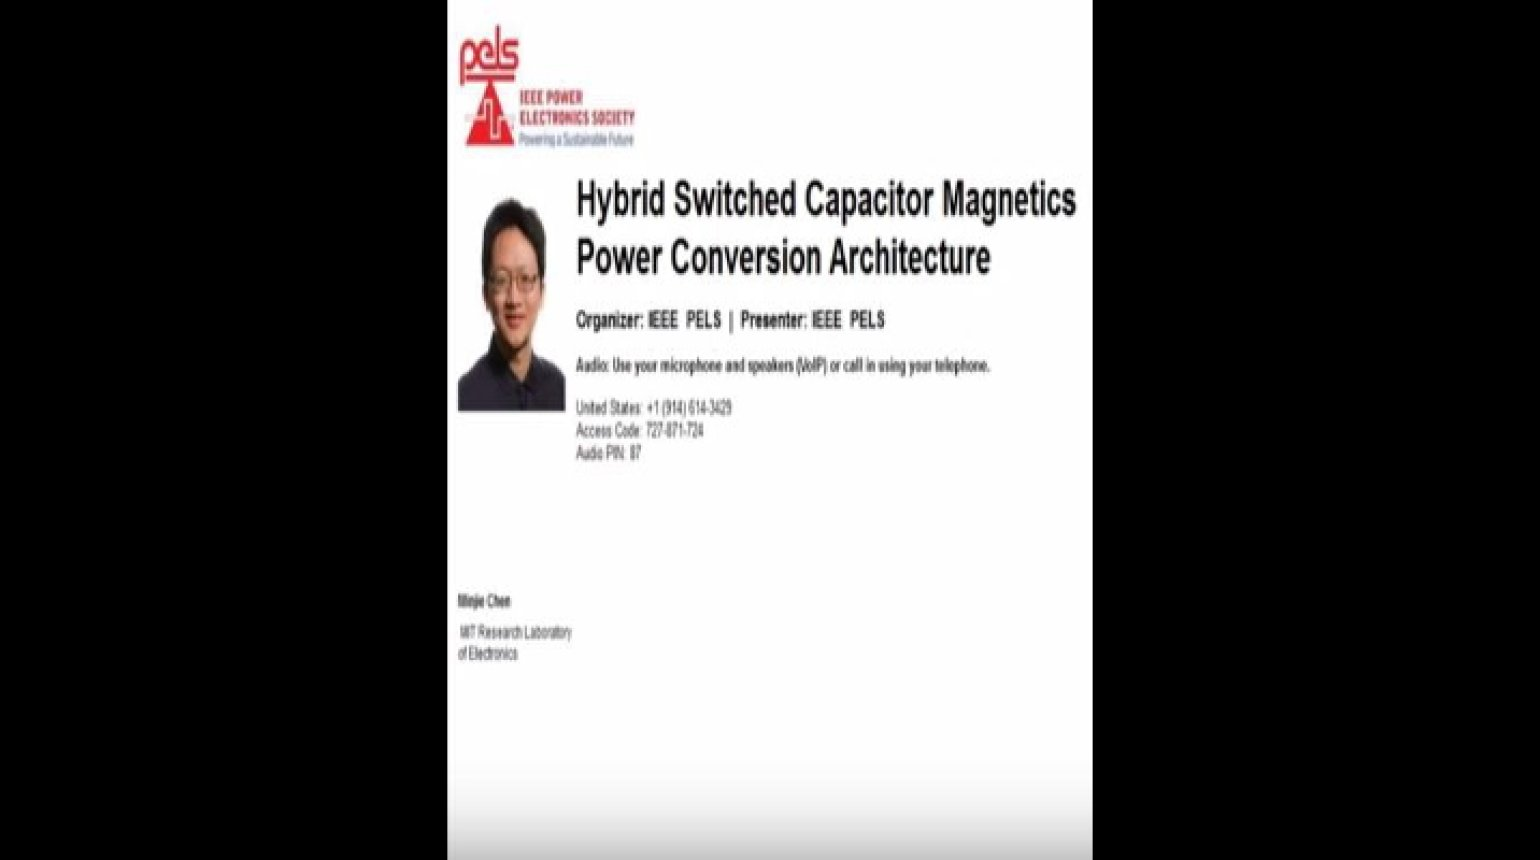 Hybrid Switched Capacitor Magnetics Power Conversion Architecture Video